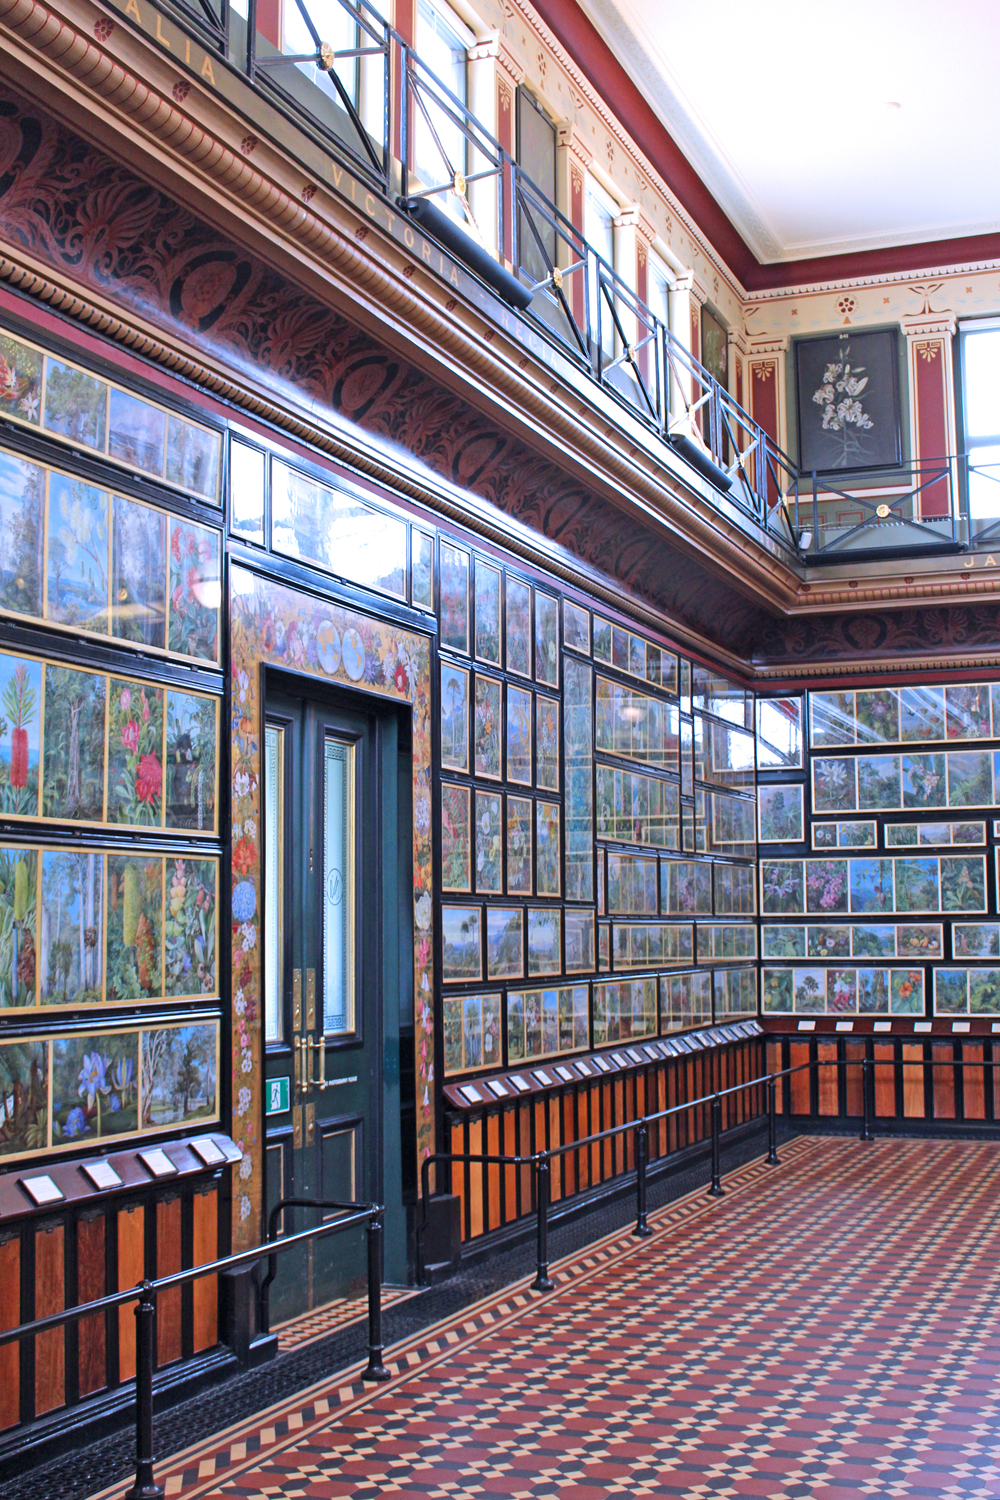 Marianne North Gallery at Kew Gardens in Spring - London lifestyle blog